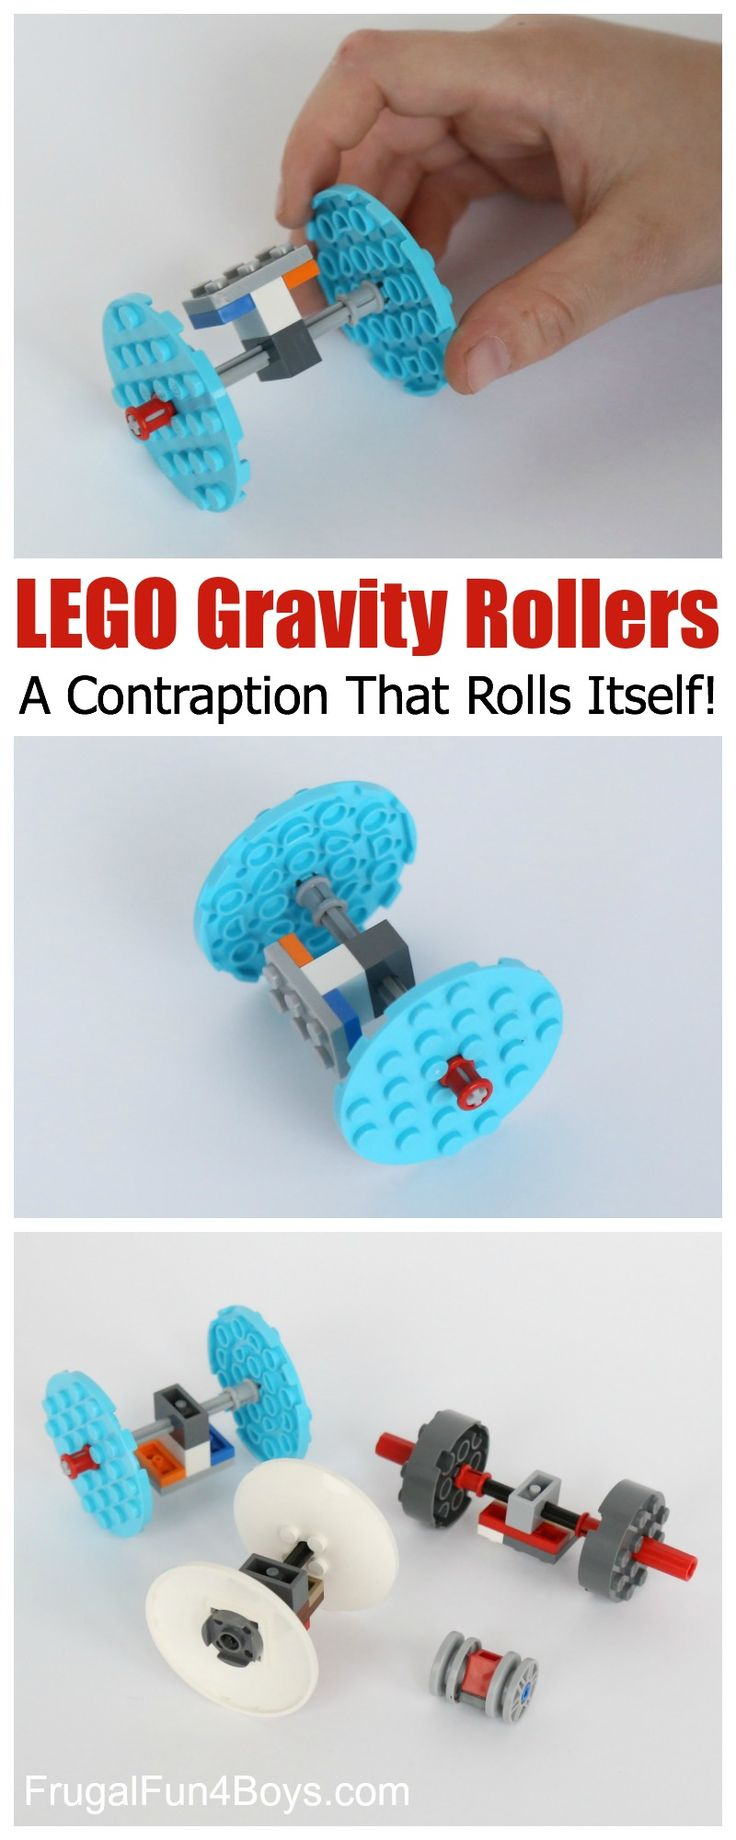 Here's a neat LEGO project that will allow kids to explore the concepts of gravity, mass, force, and momentum, all while playing with LEGO bricks!   One day, Gresham build a little tiny LEGO TIE Fighter (from Star Wars) out of little tiny pieces, and he discovered that when he would set it down on …